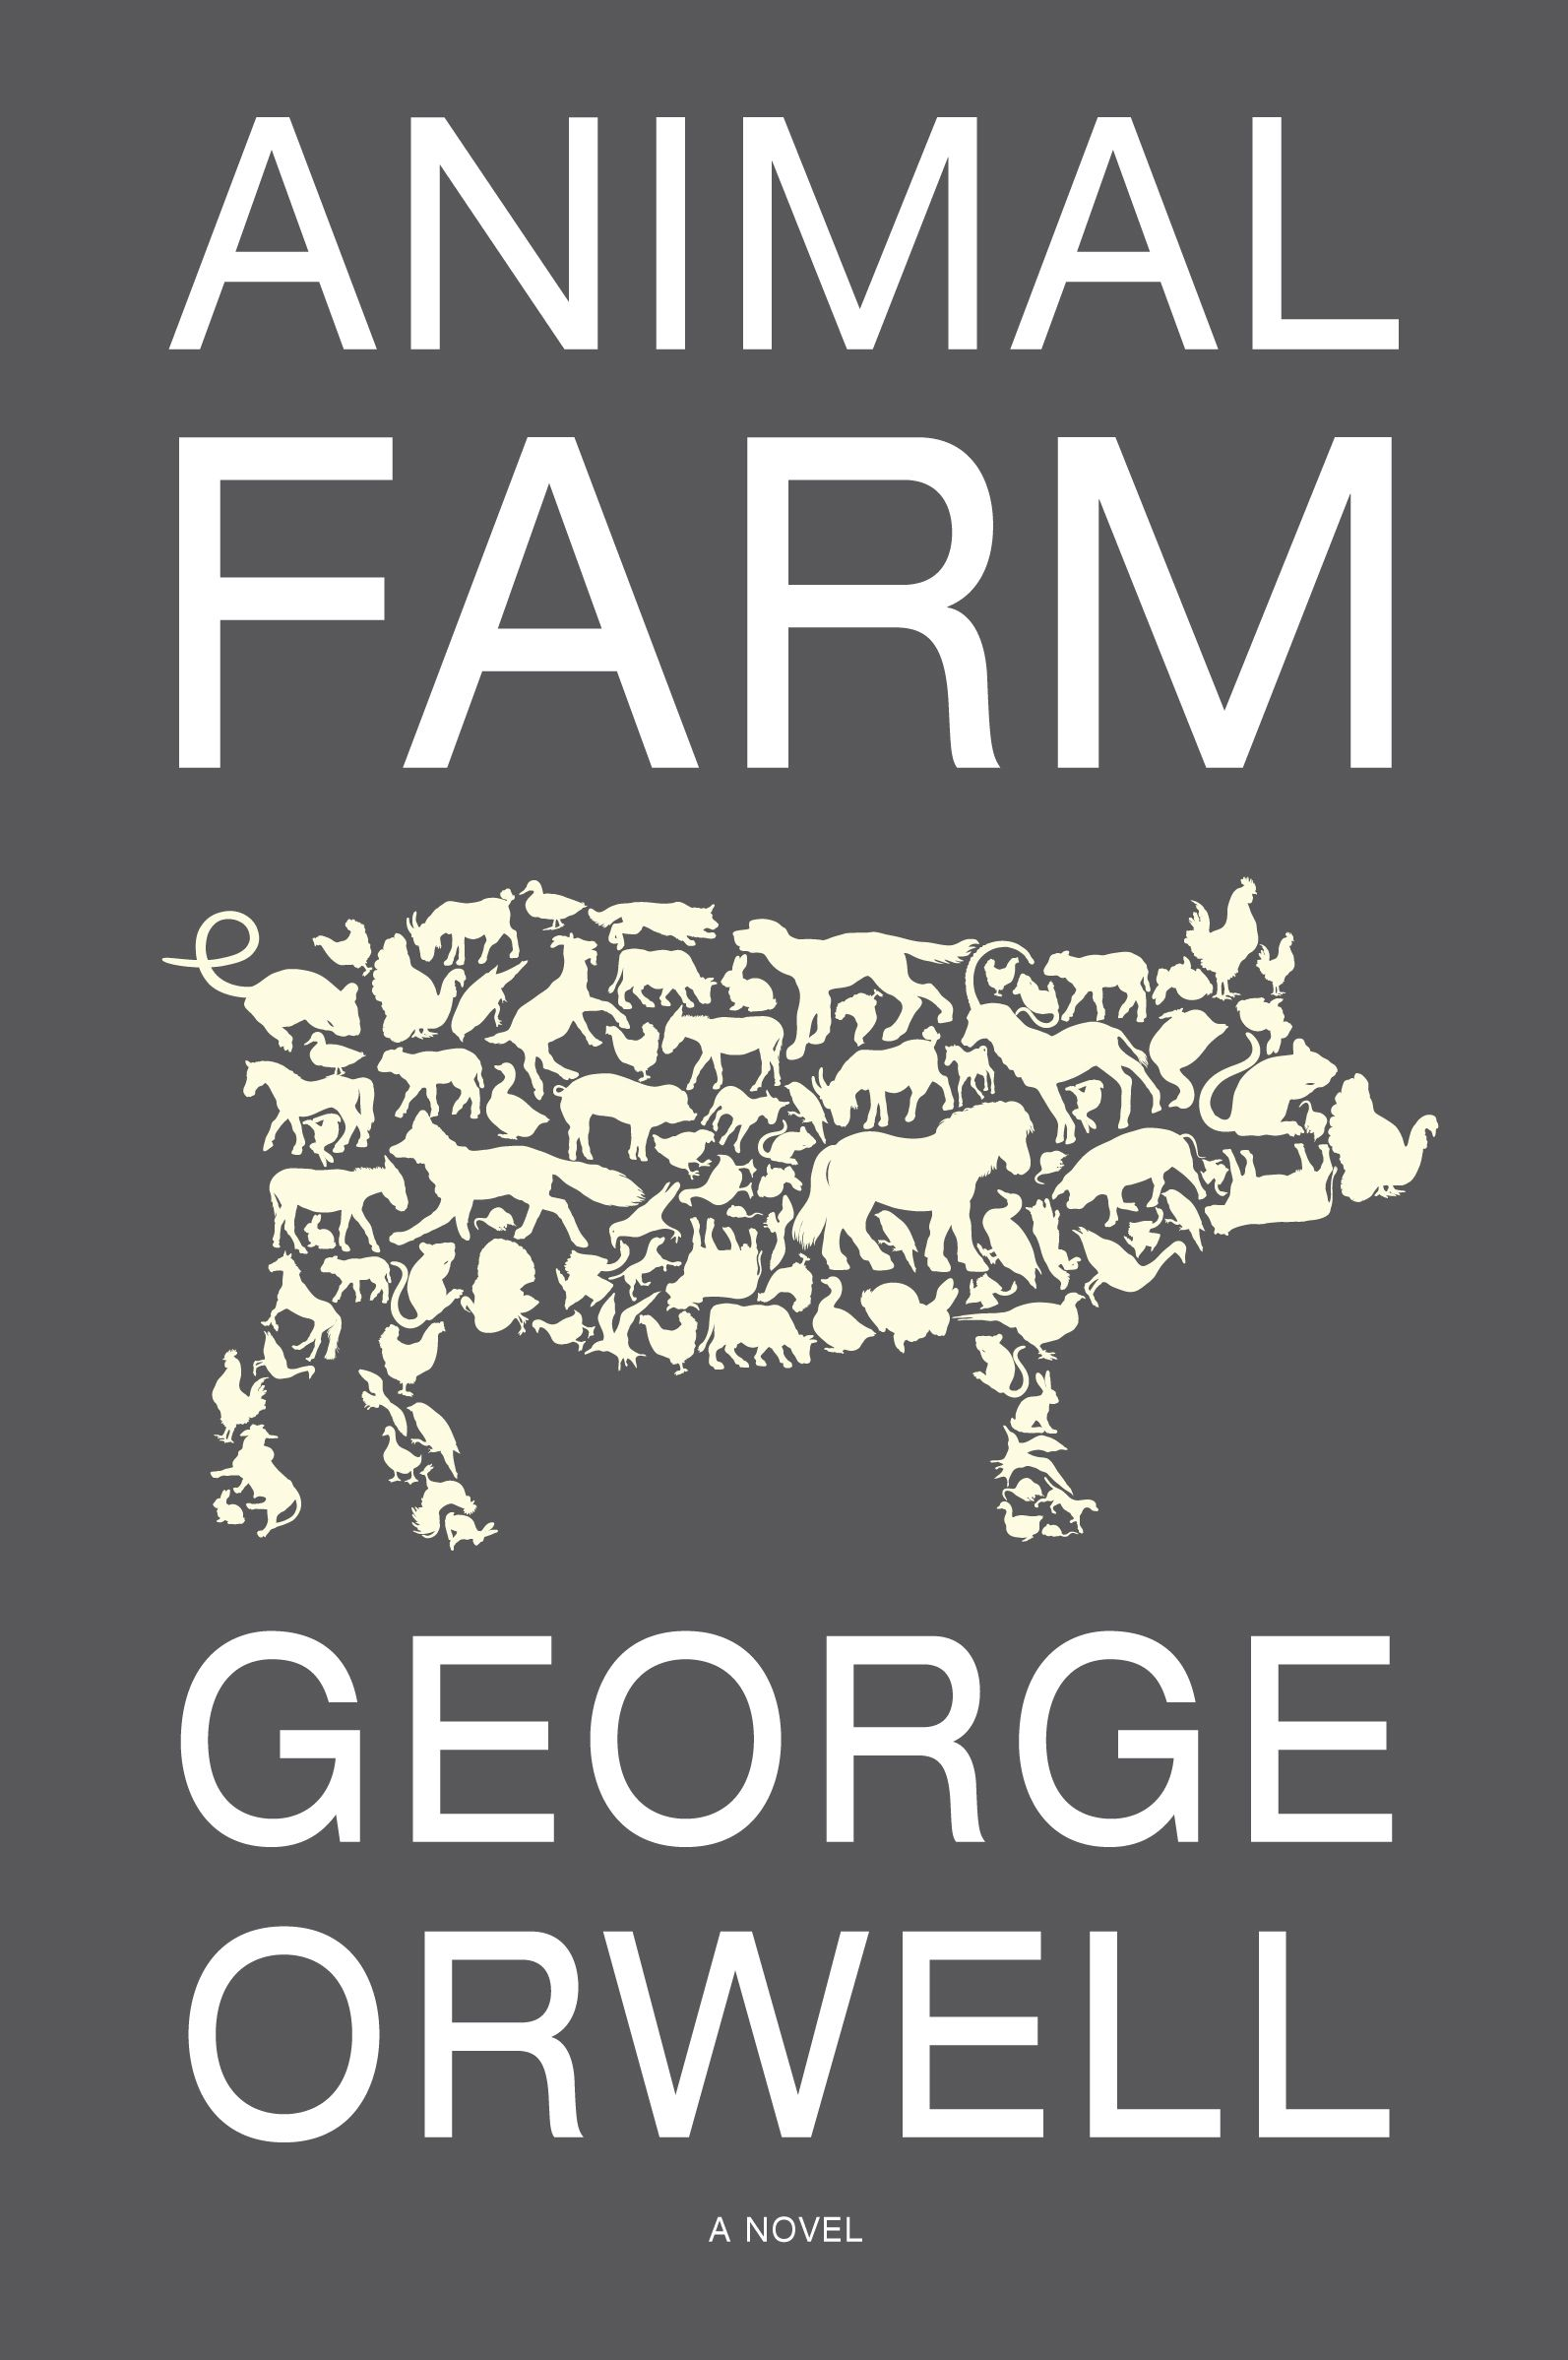 In George Orwell's novel Animal Farm, what is the role of Snowball in the